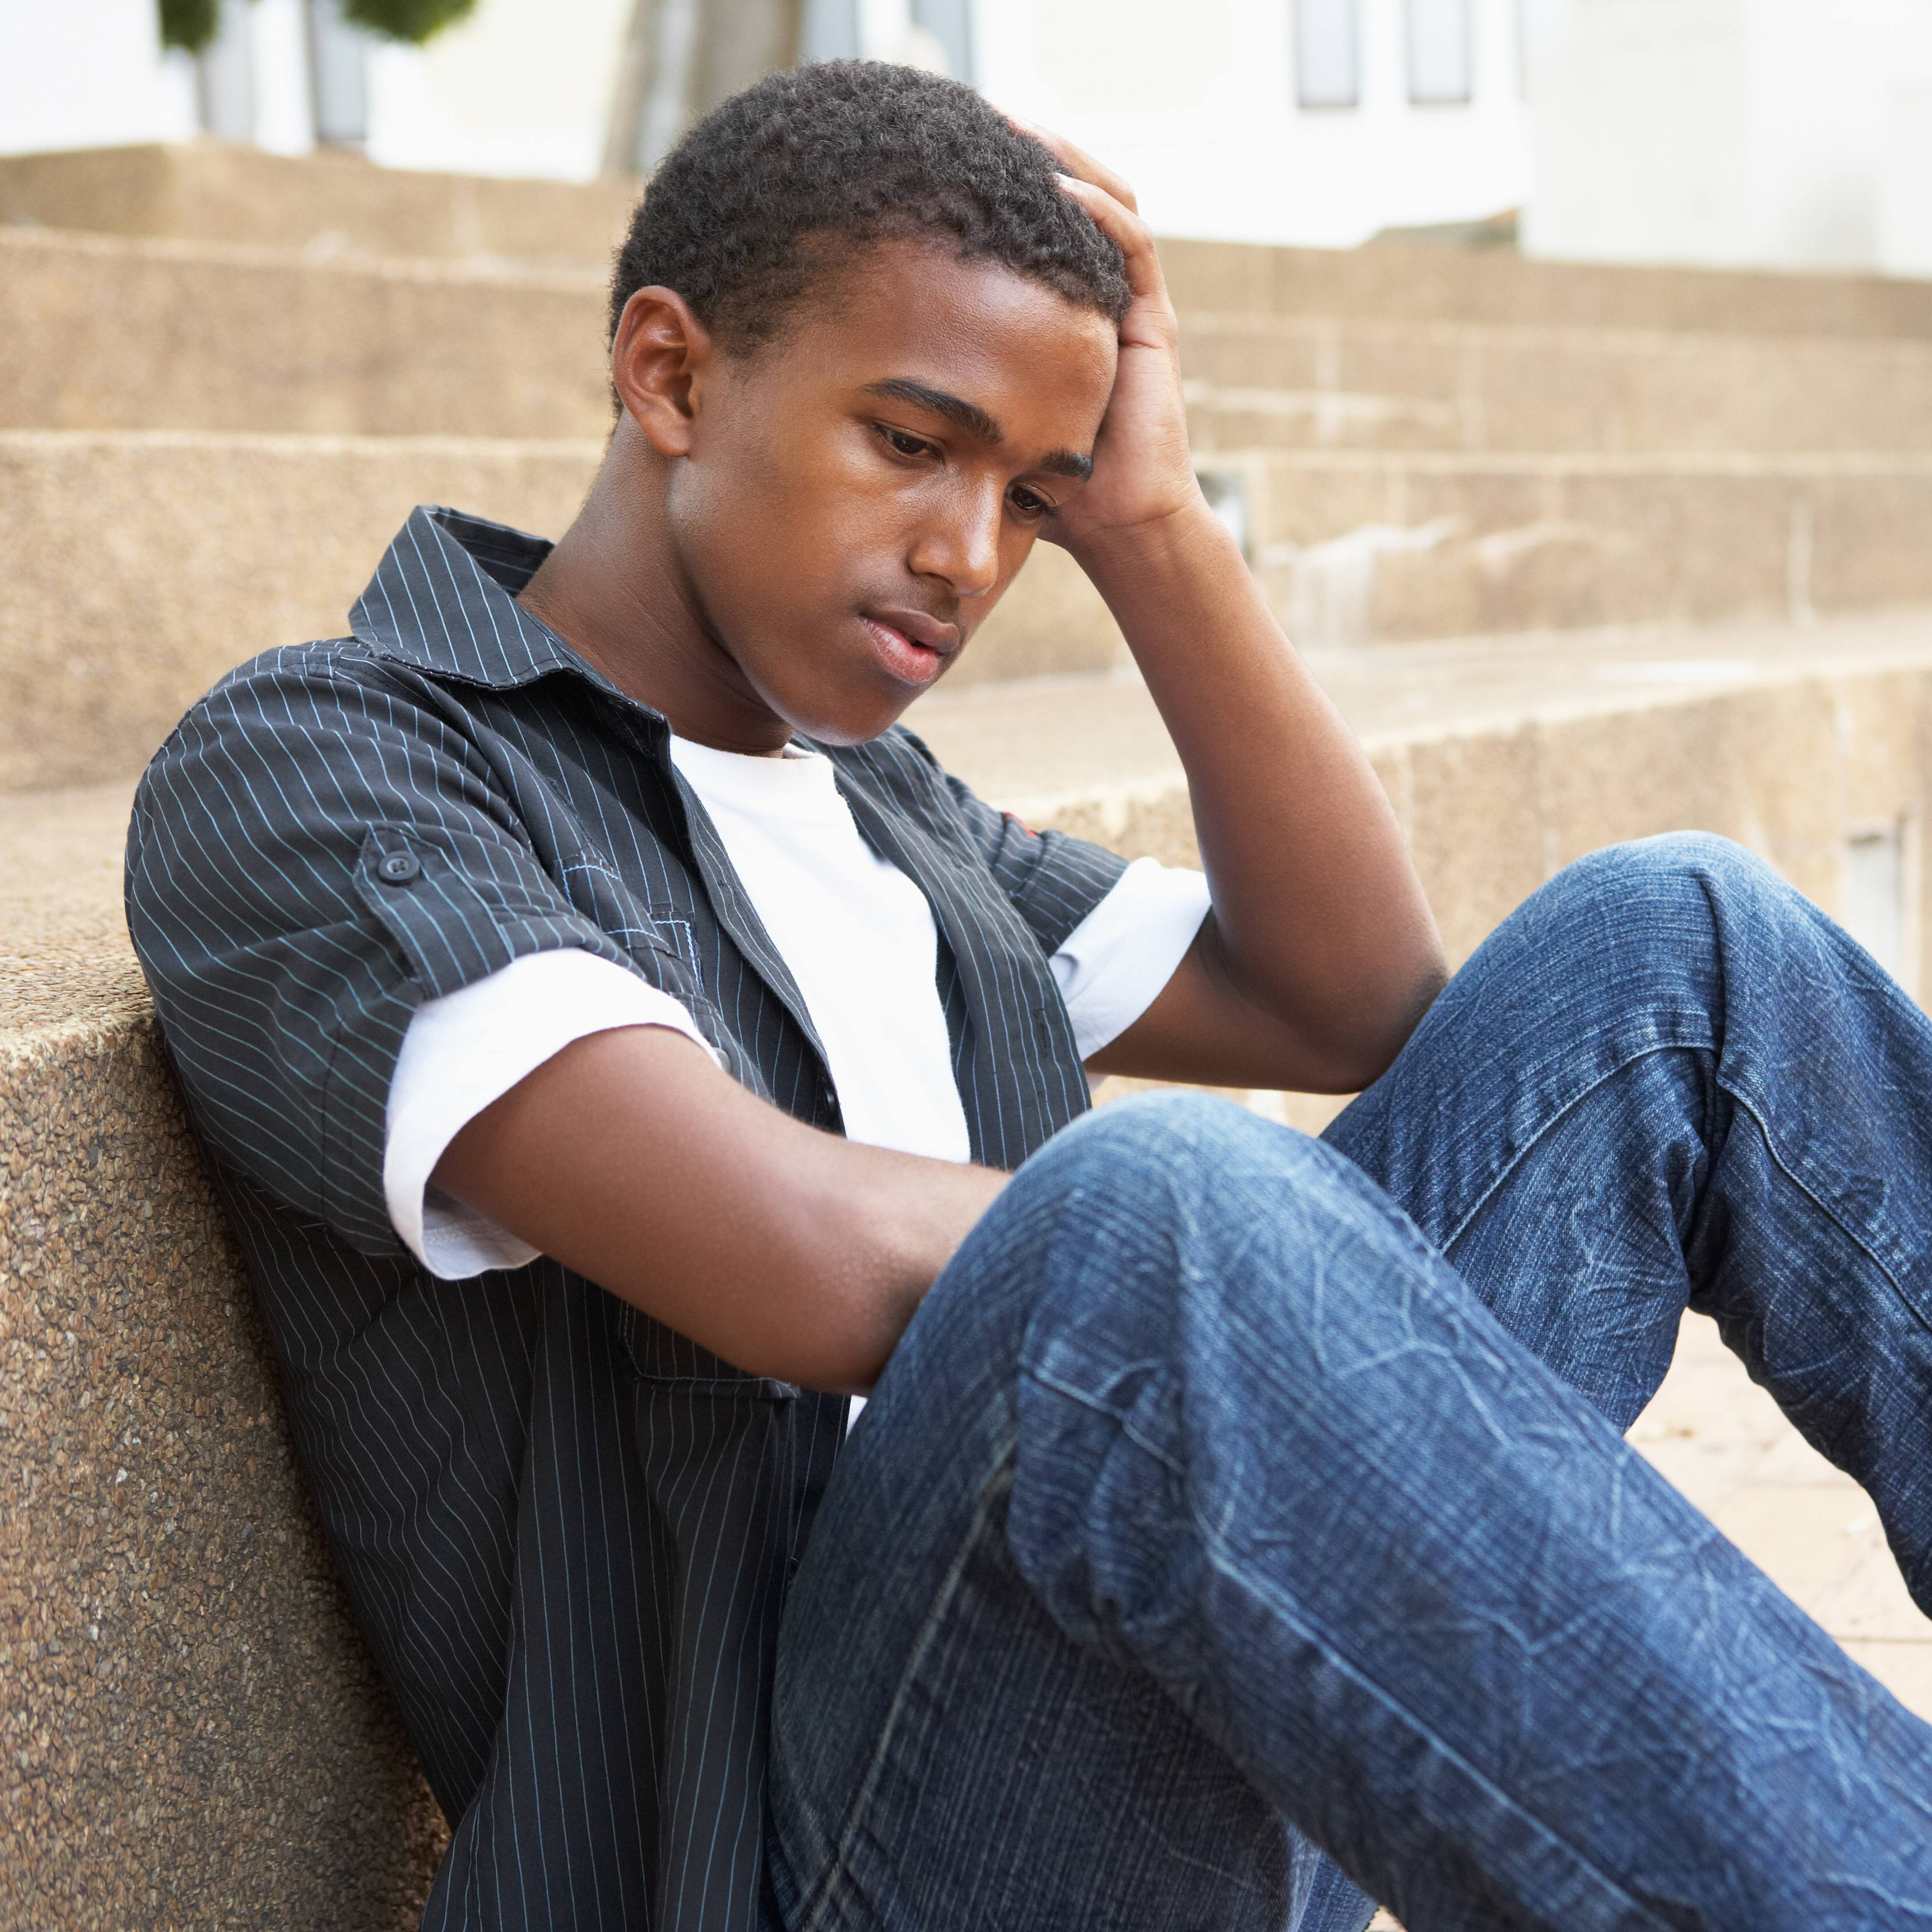 a teenage boy sitting on some steps with this head resting on his hand, looking sad or depressed